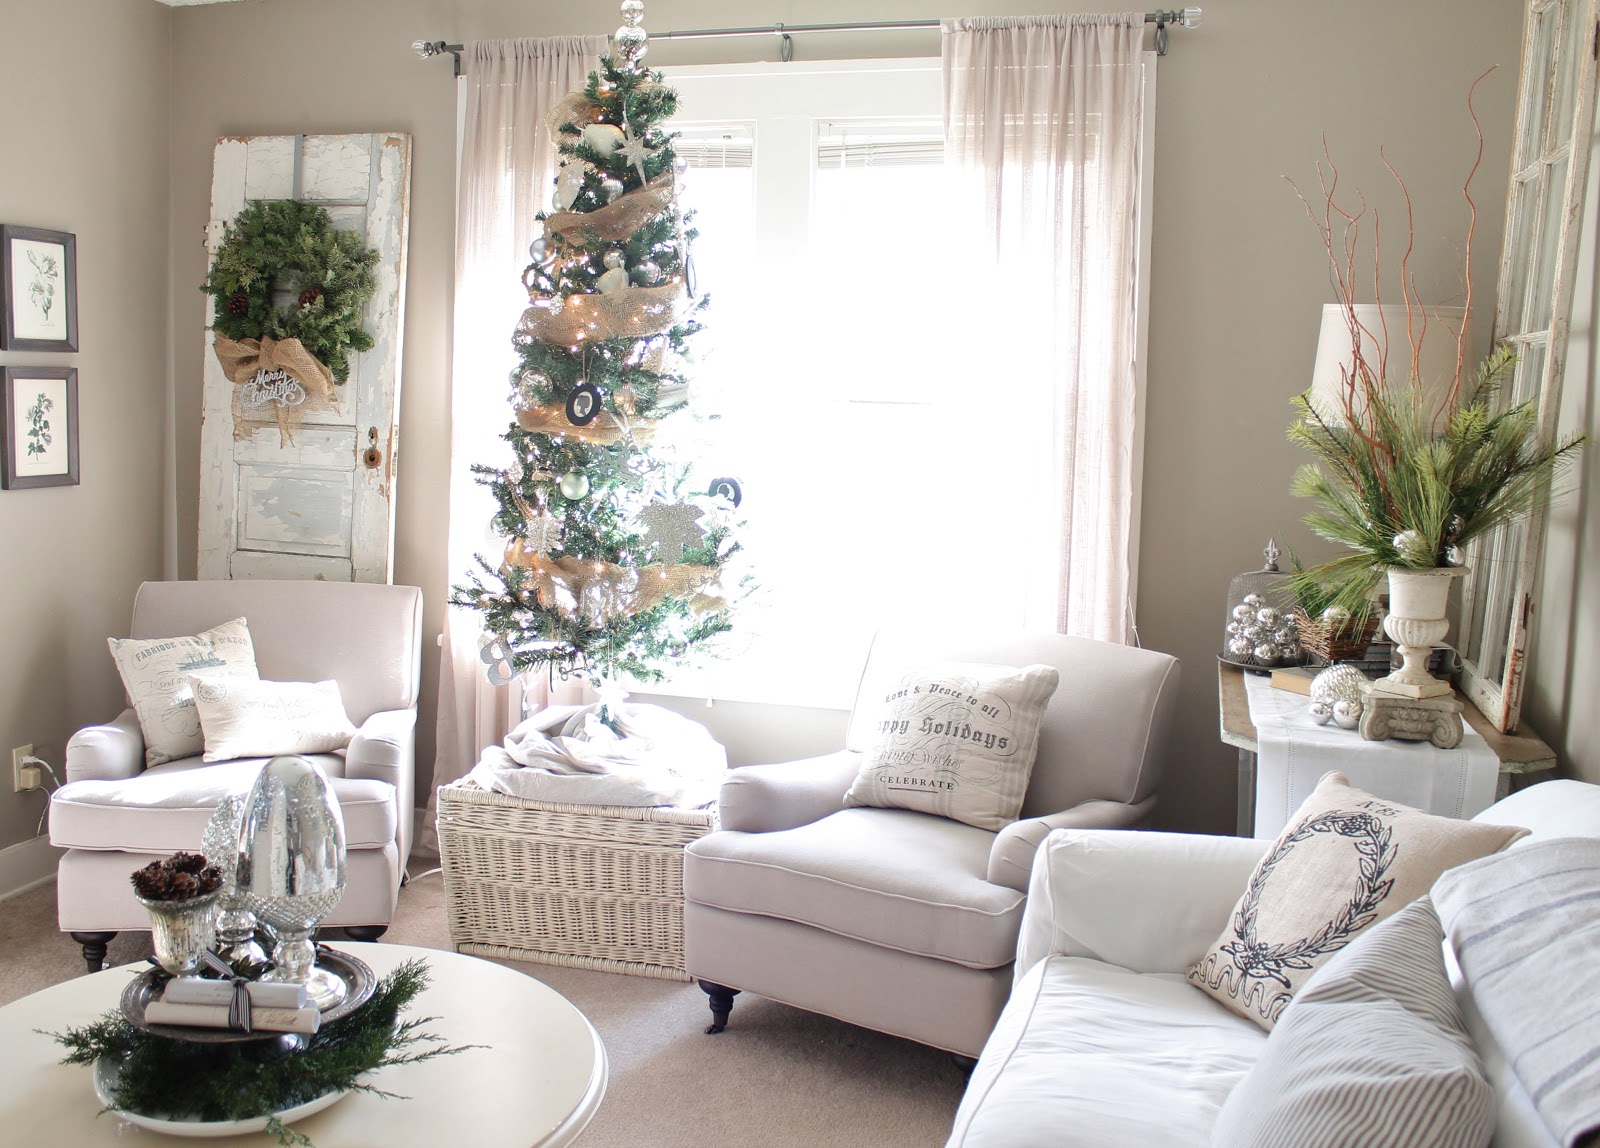 home decor pictures living room 2. Our Christmas Living Room  Part 2 12th And White